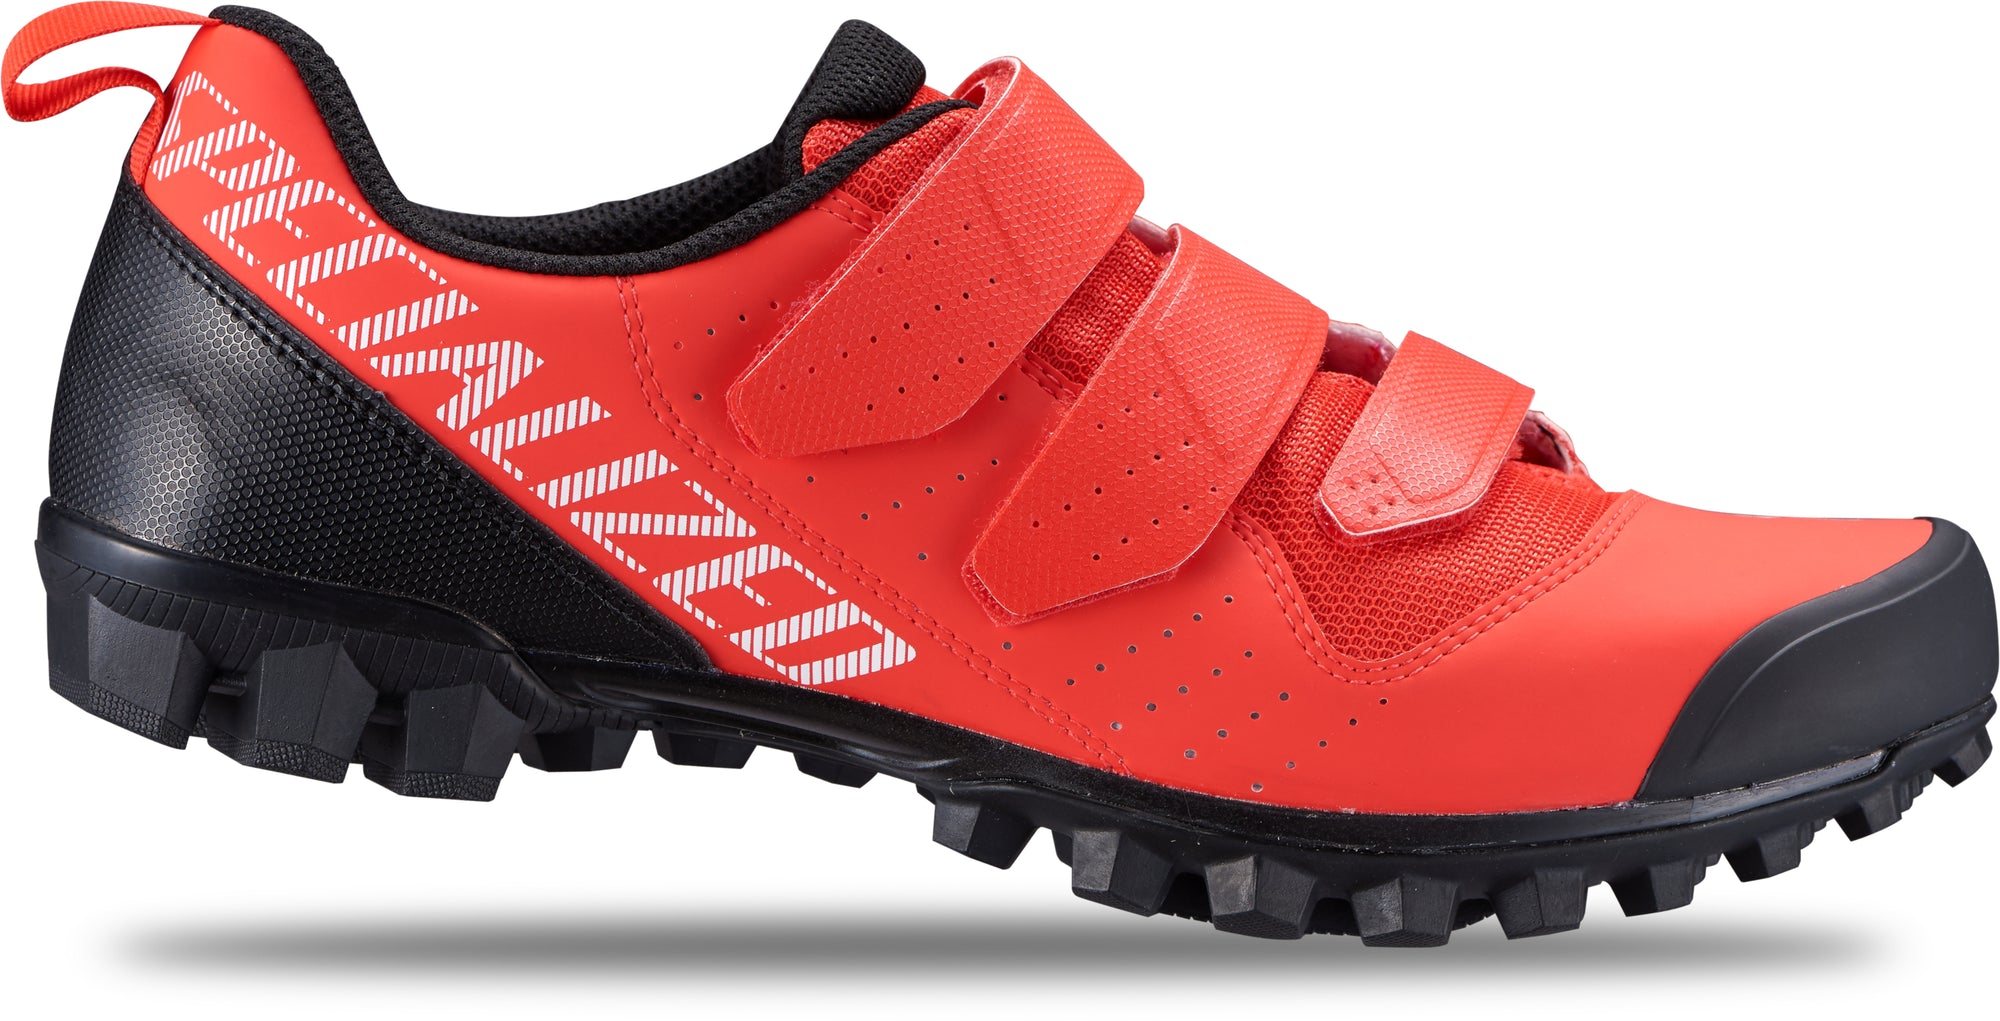 Recon 1.0 Mountain Bike Shoes